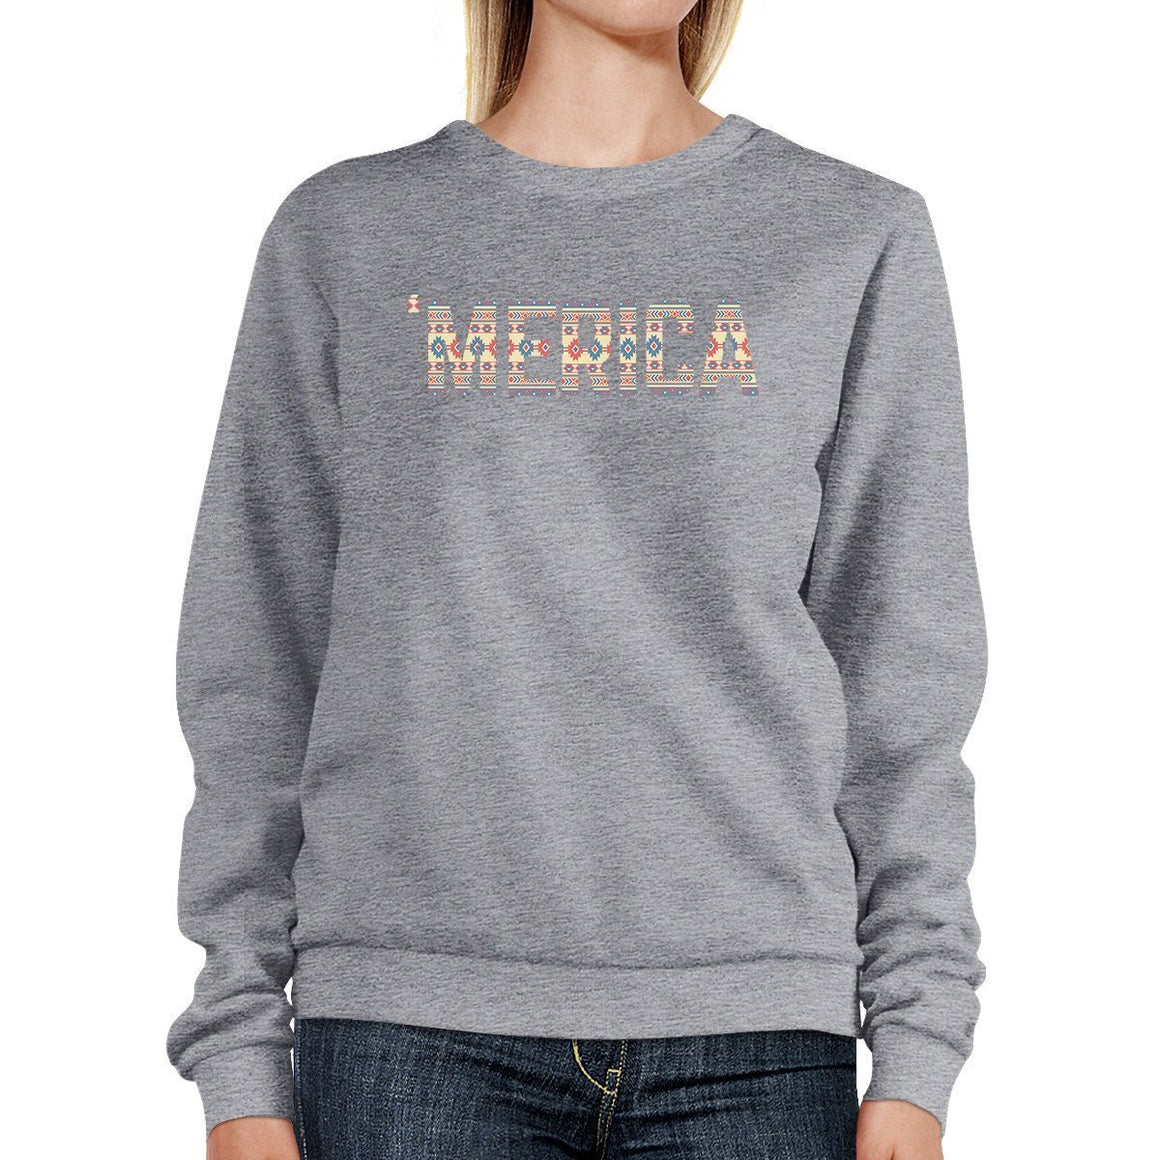 'Merica Cute Tribal Pattern Sweatshirt Round Neck Trendy Design Top